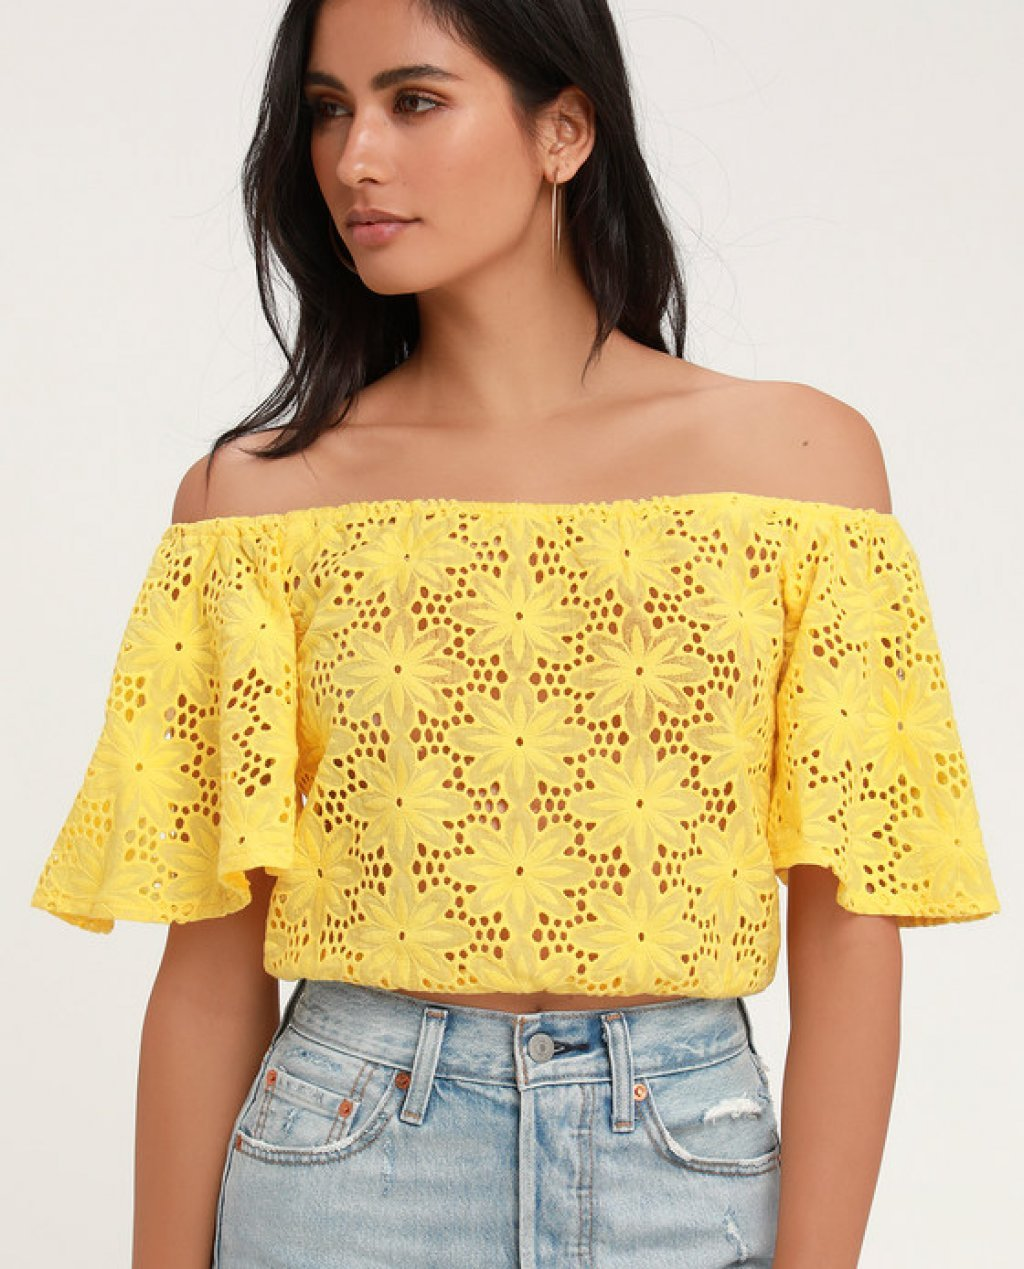 Sunshine Yellow Eyelet Off-the-Shoulder Crop Top